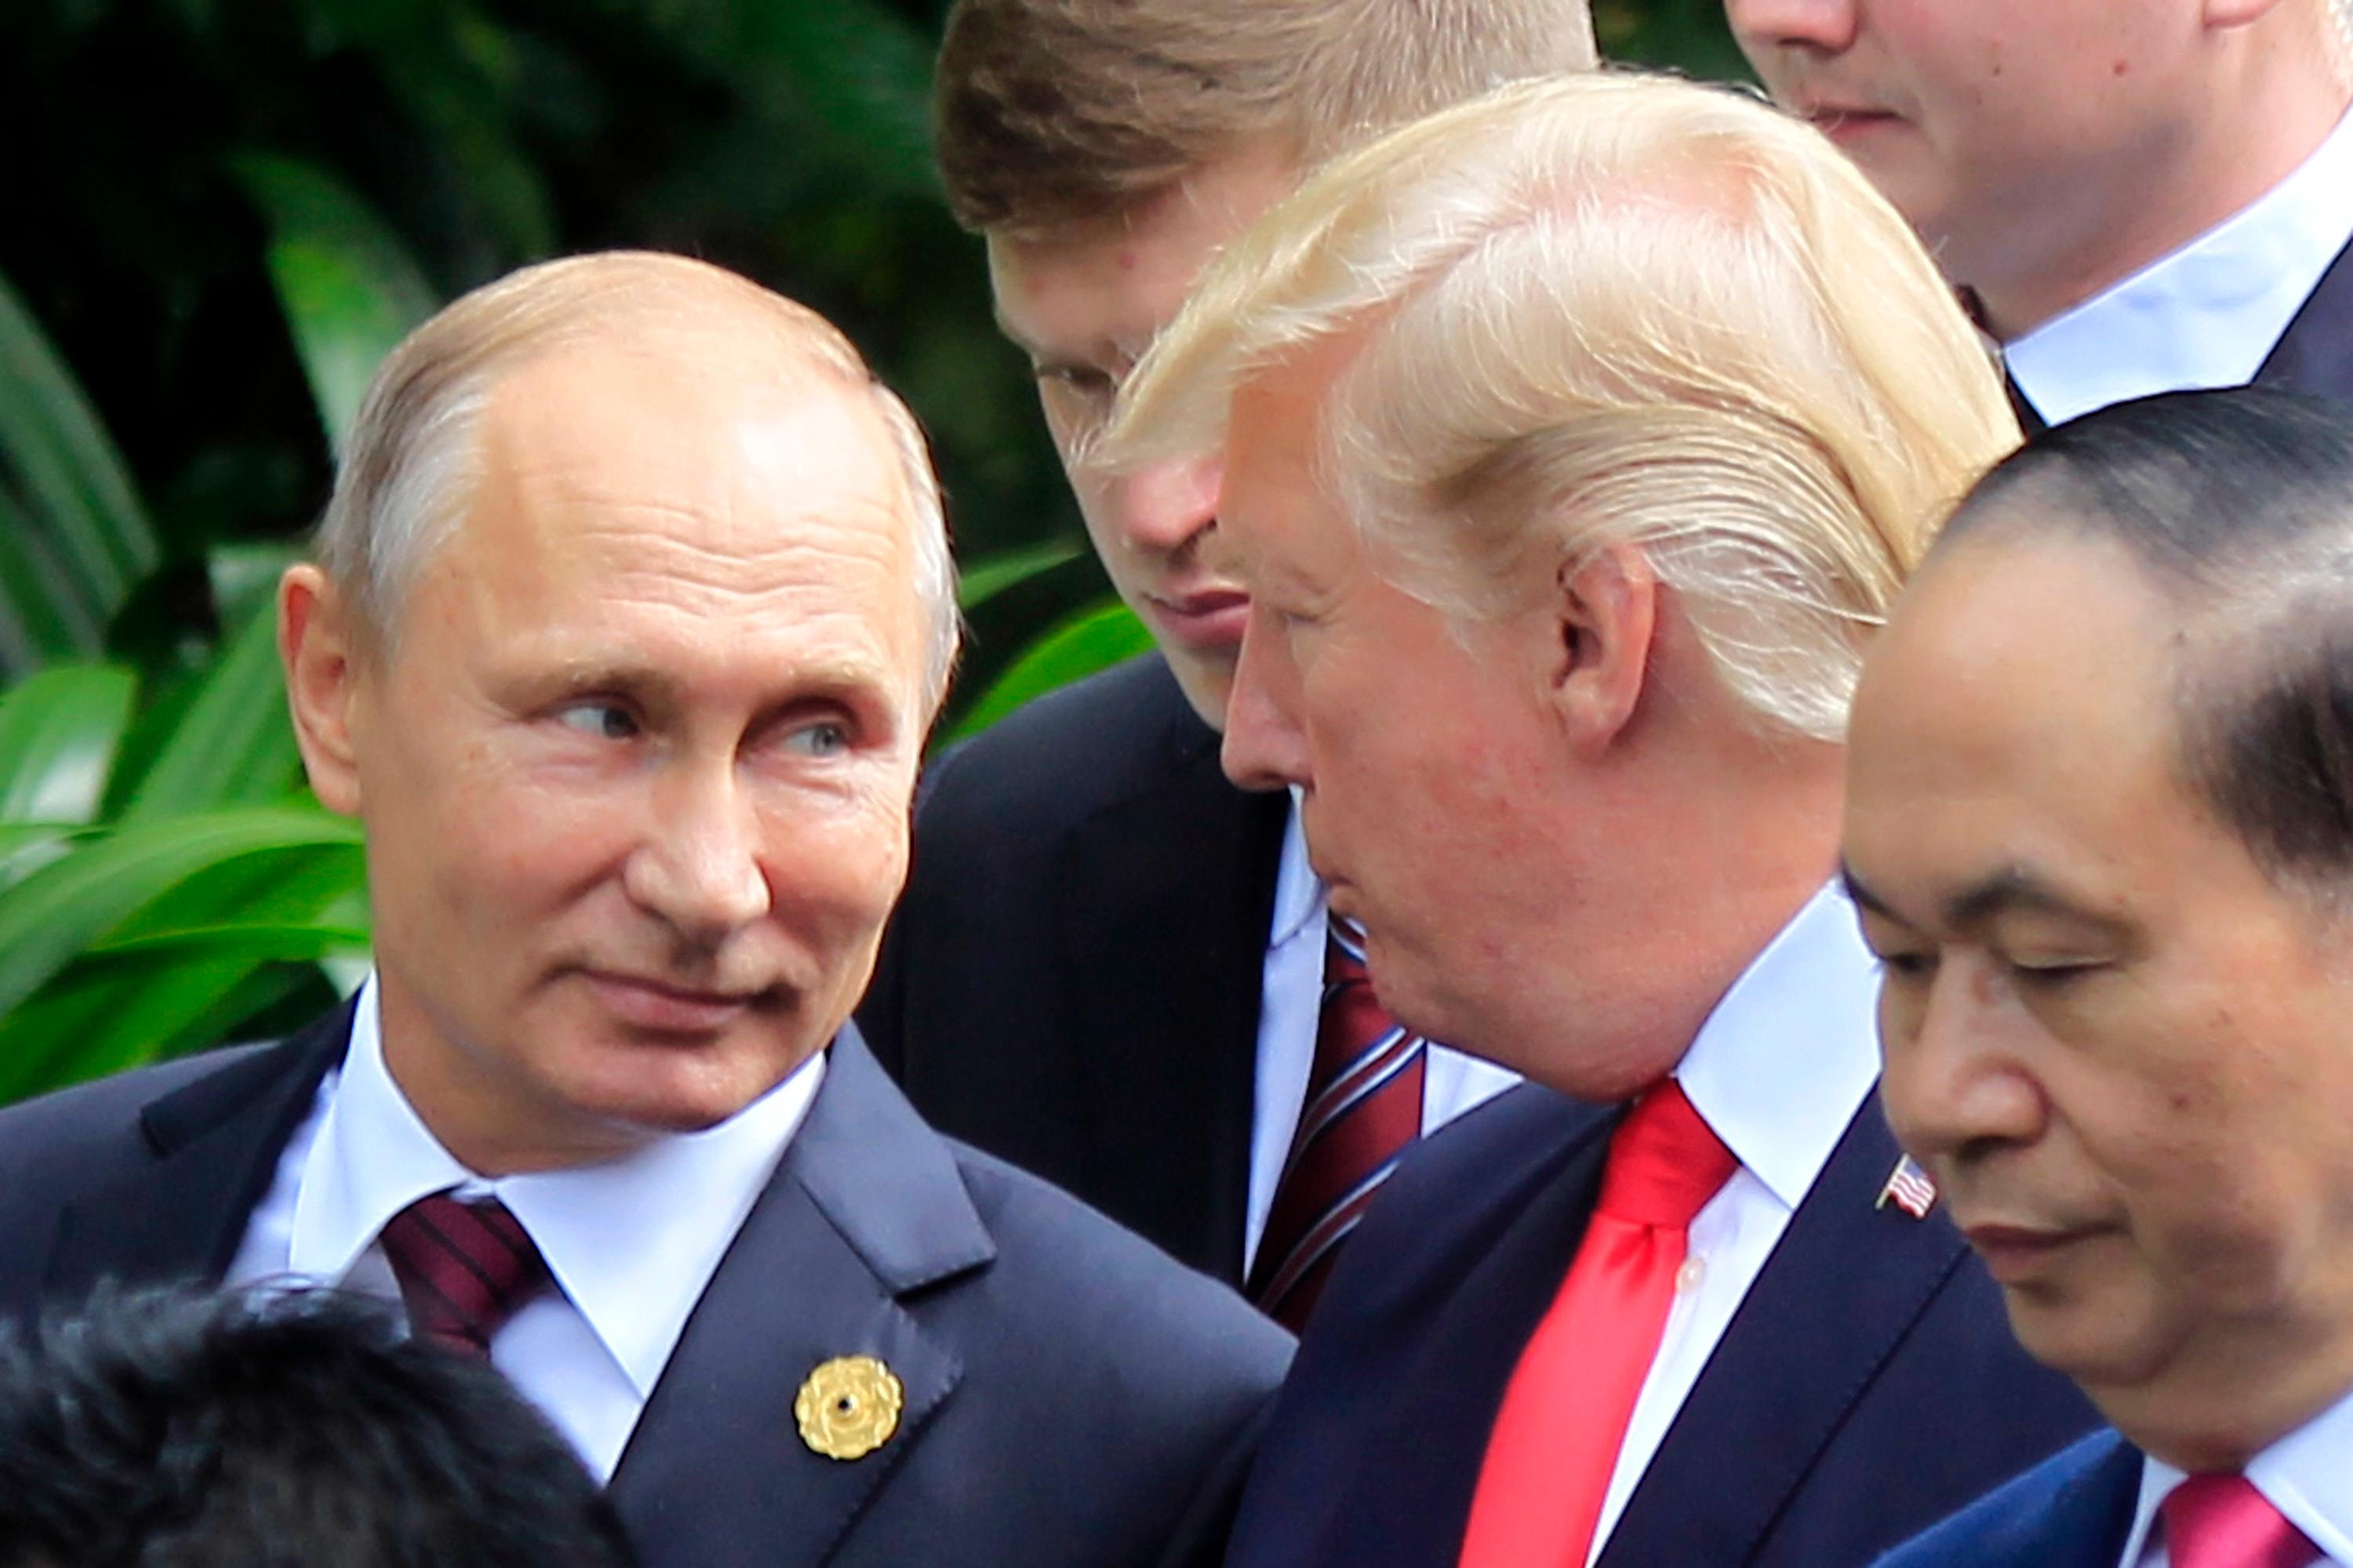 Russian President Vladimir Putin, left, and U.S. President Donald Trump talk as they arrive for the family photo session during the Asia-Pacific Economic Cooperation (APEC) Summit in Danang, Vietnam, Saturday, Nov. 11, 2017. (AP Photo/Hau Dinh)<p></p>